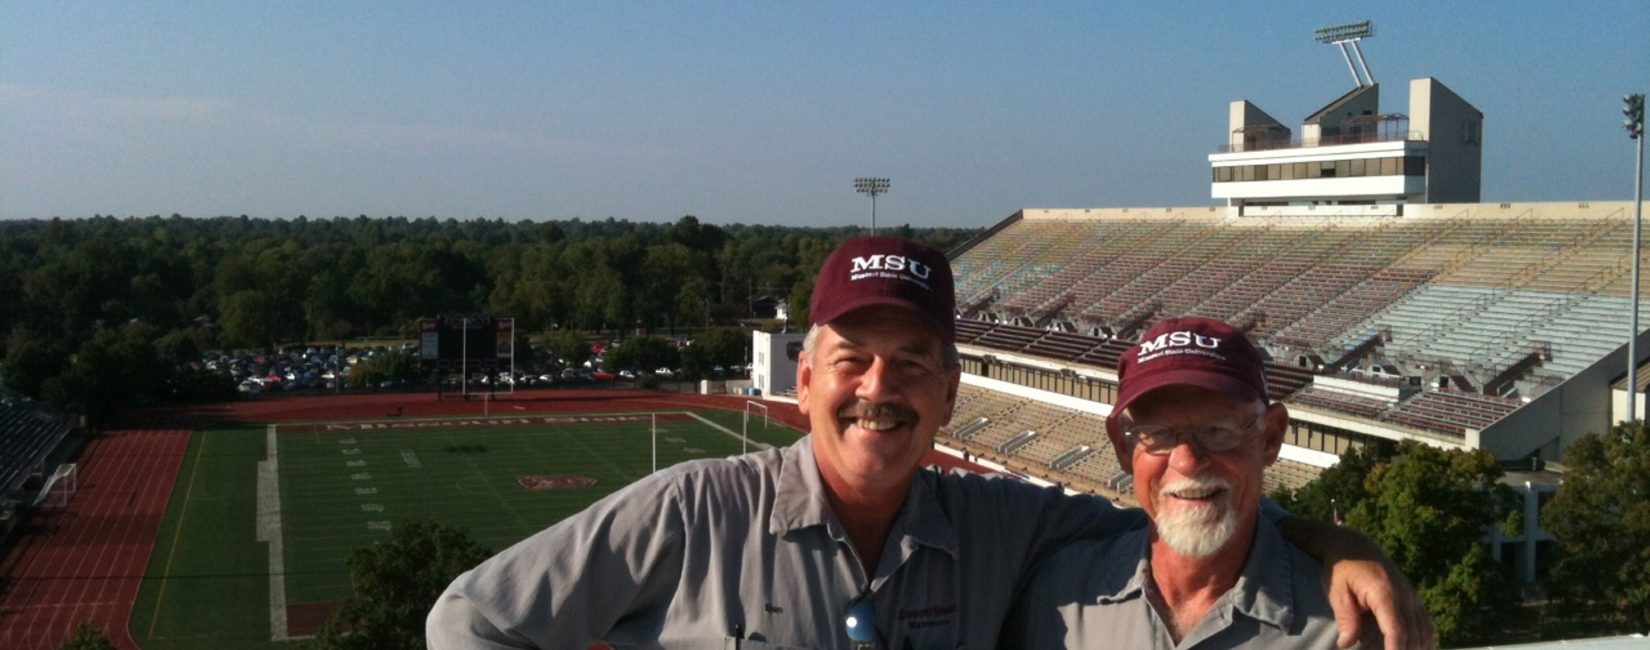 Missouri State University - Dan and Dennis on top of McDonald arena - 2